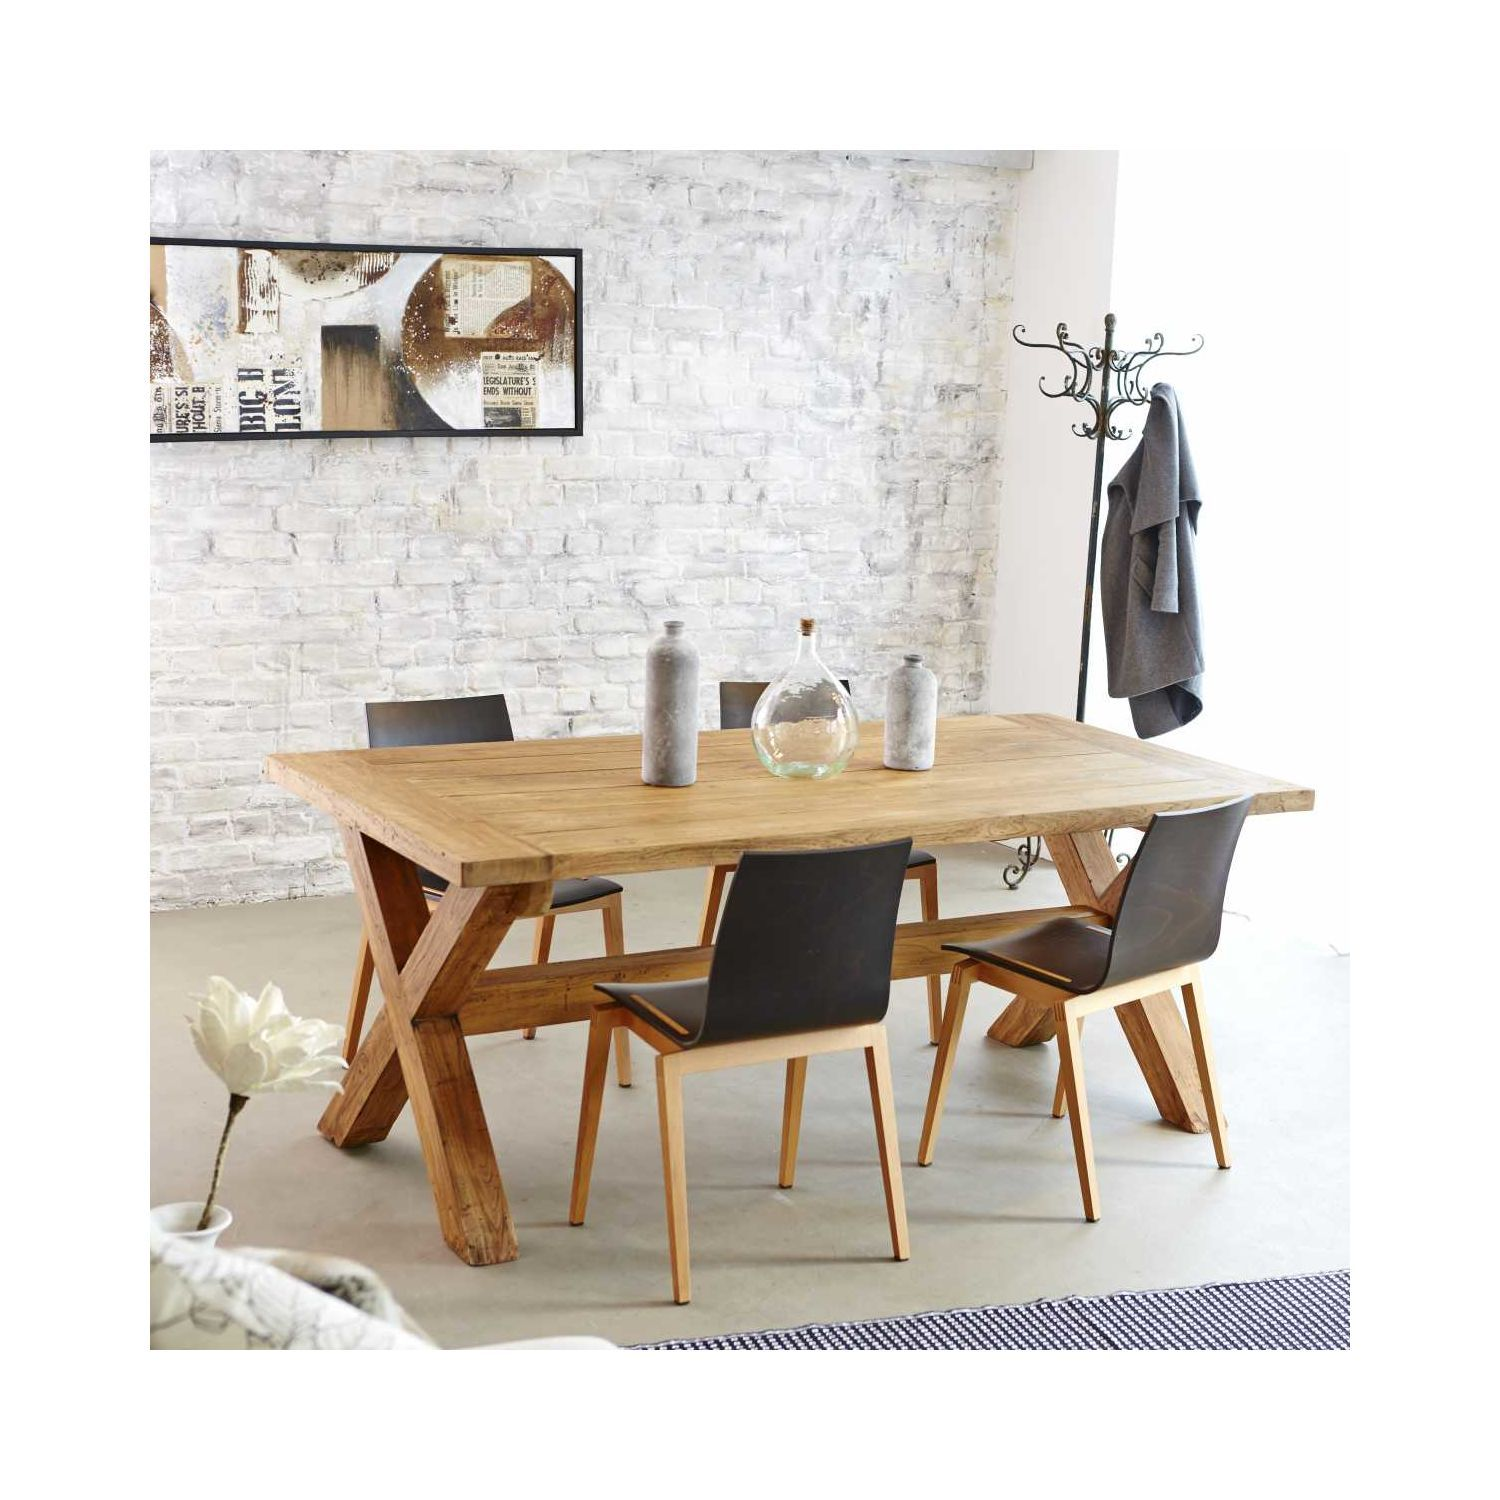 3f82a749d57a7985623aa466ac9c863c Unique De Ensemble Table Et Chaise Pas Cher